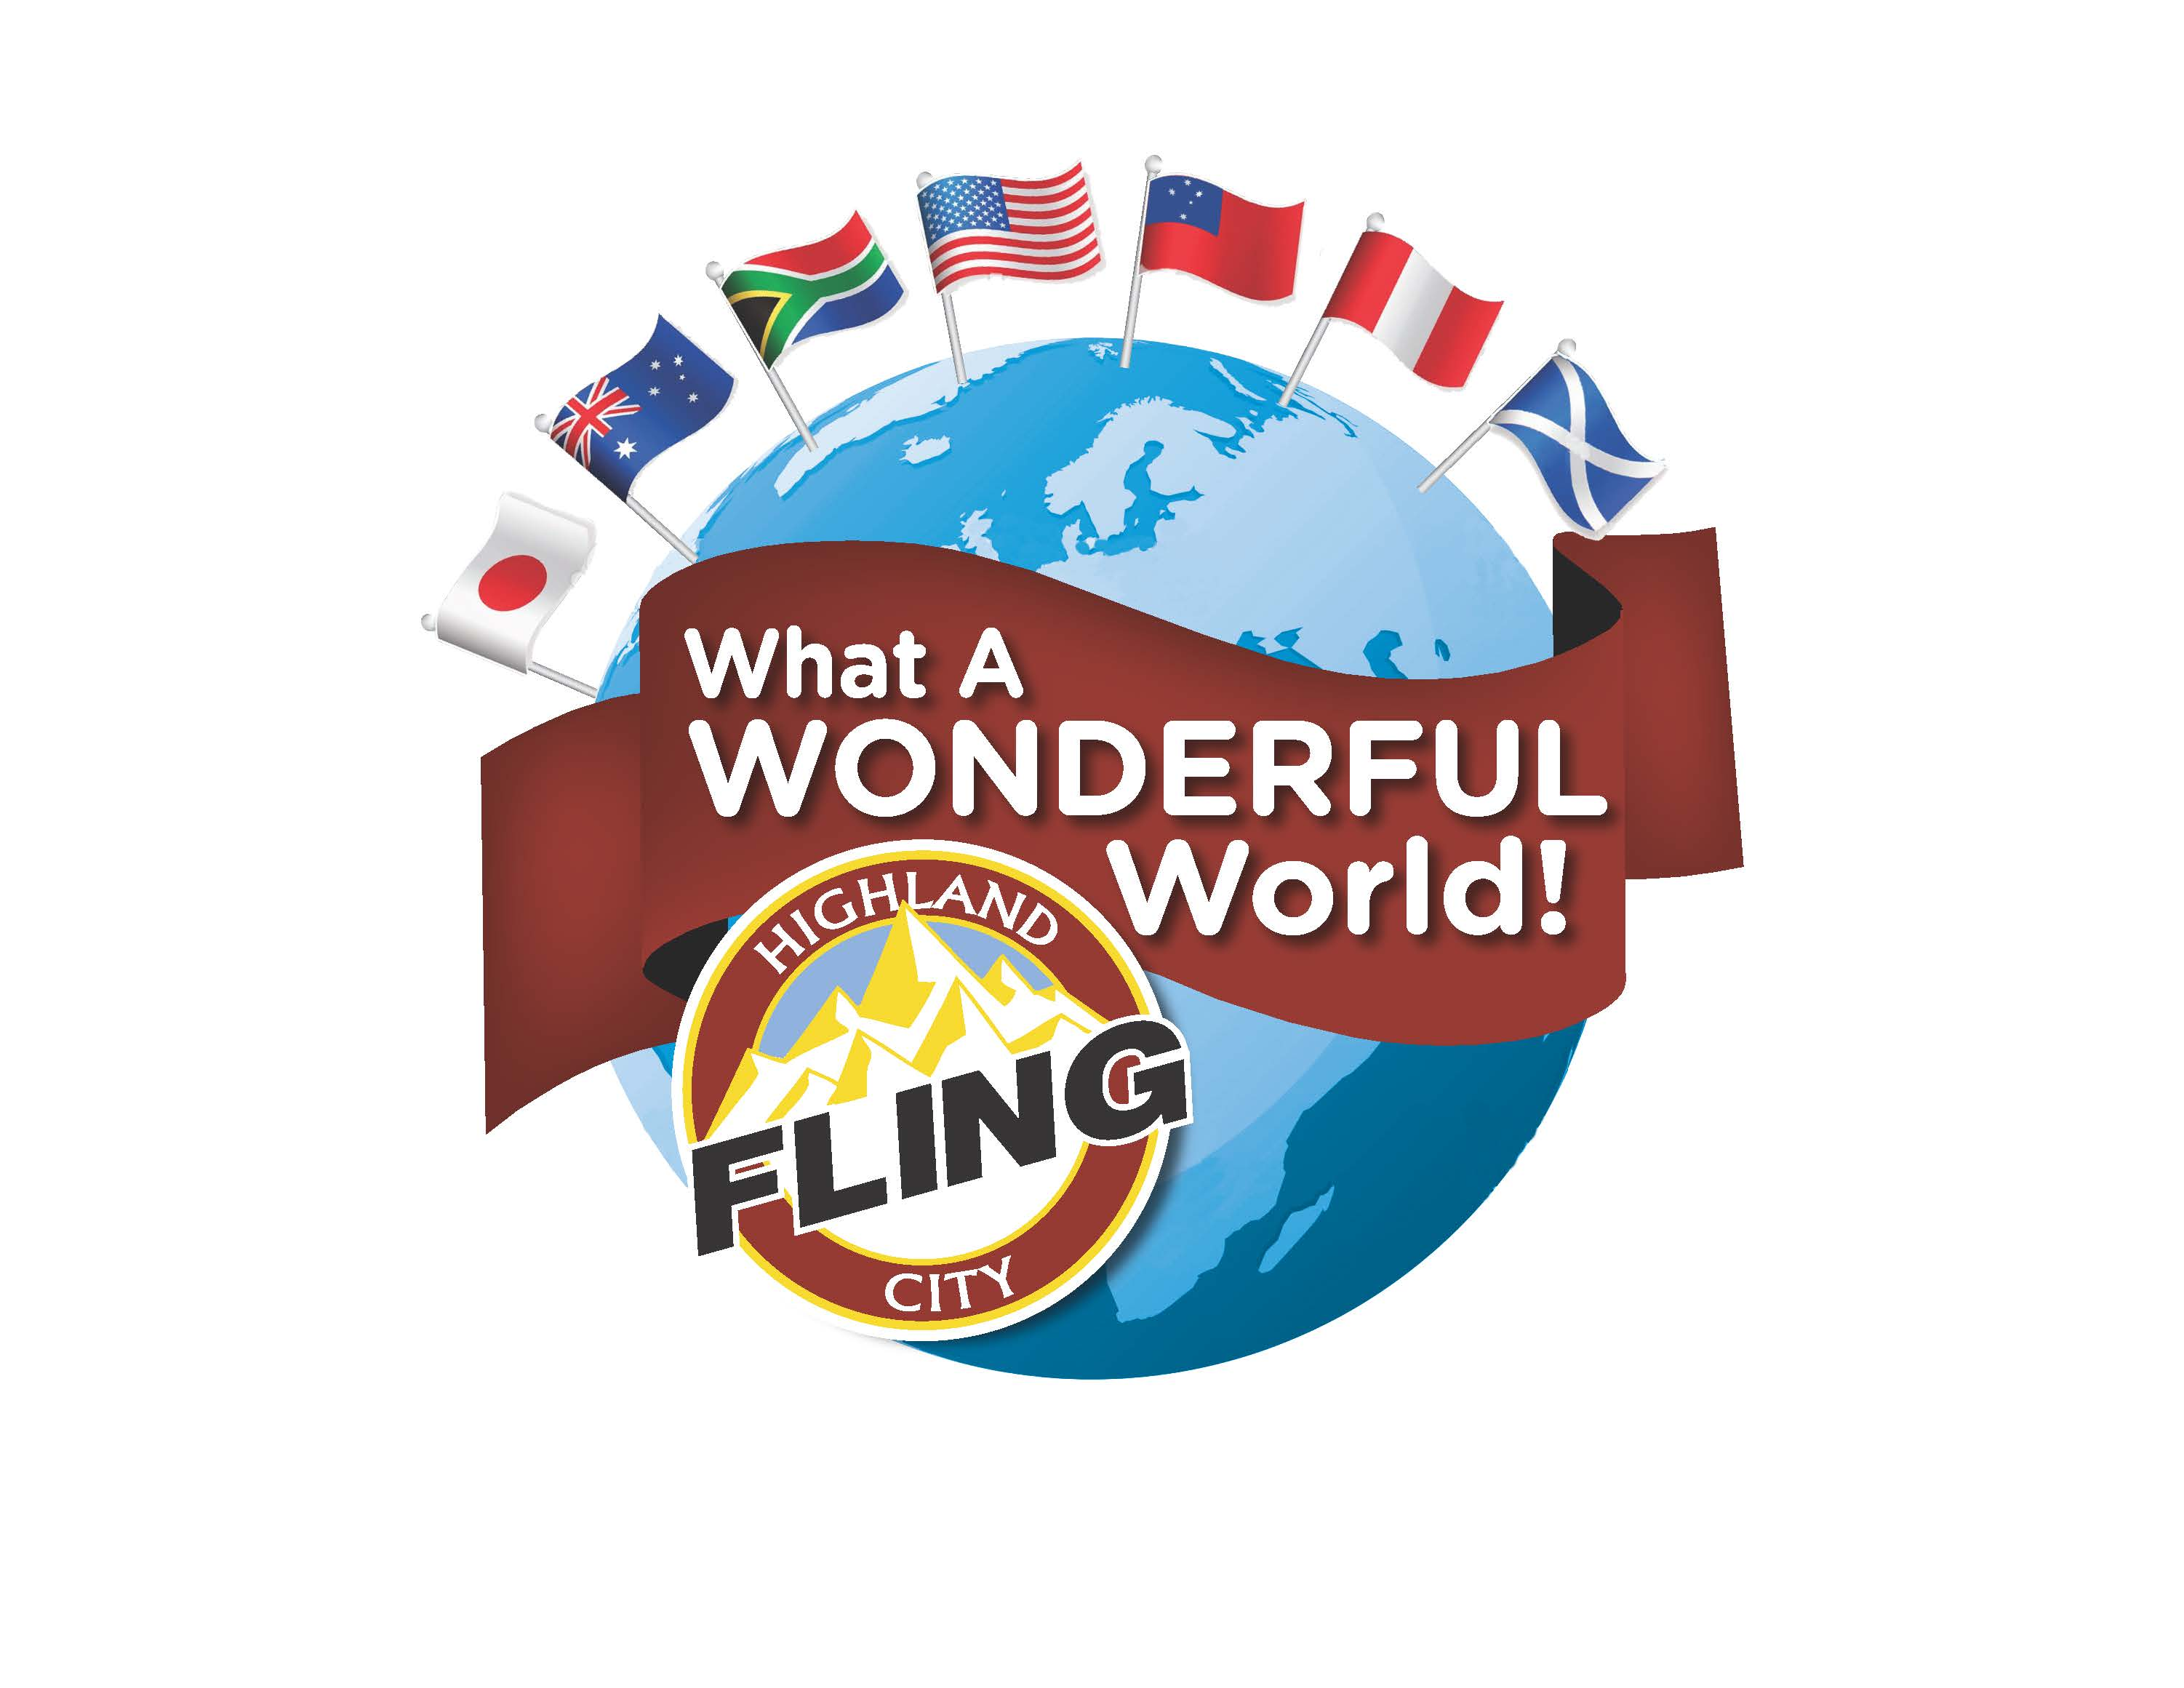 What a Wonderful World Highland City Fling Opens in new window